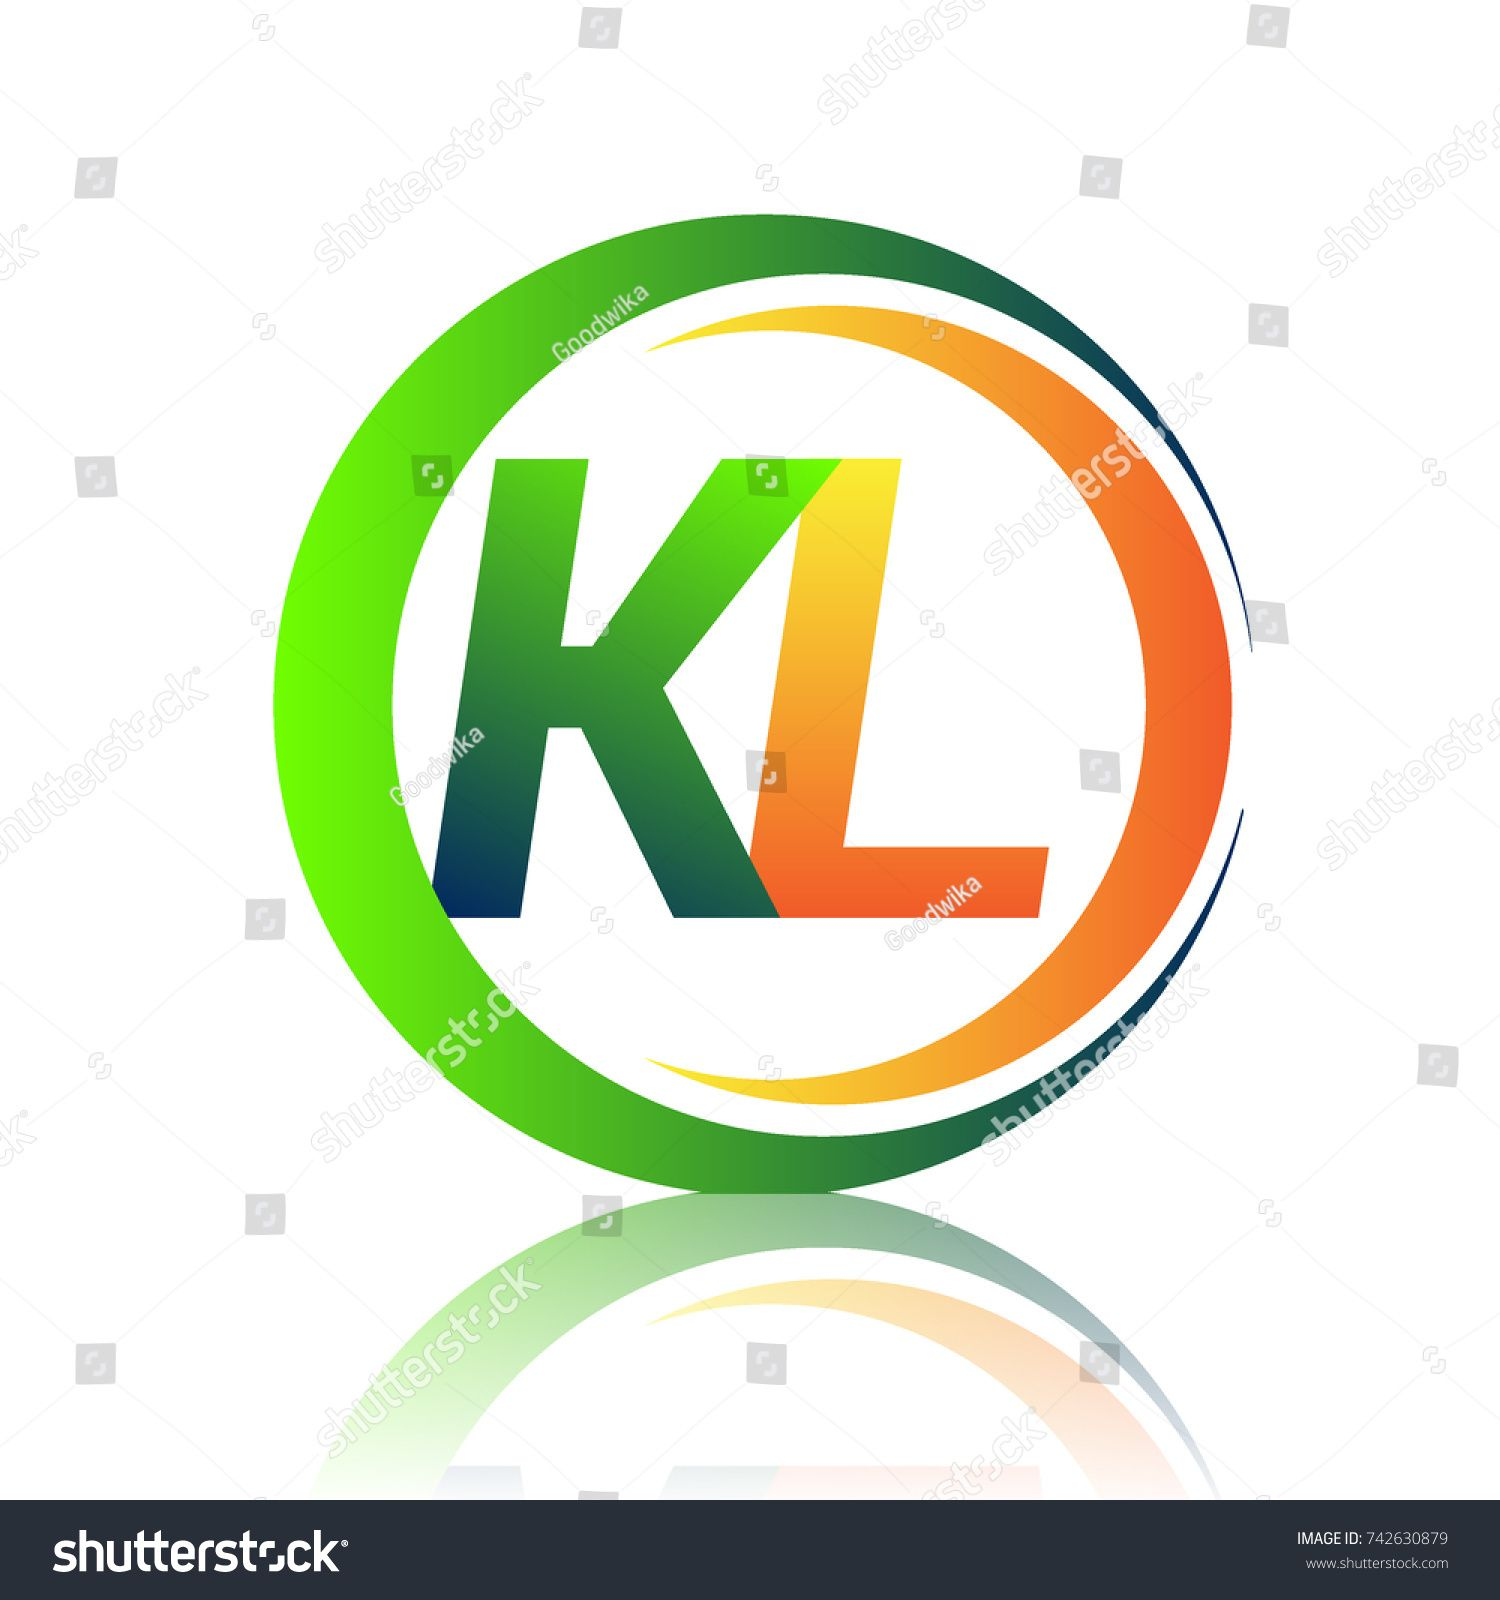 initial letter logo KL company name green and orange color